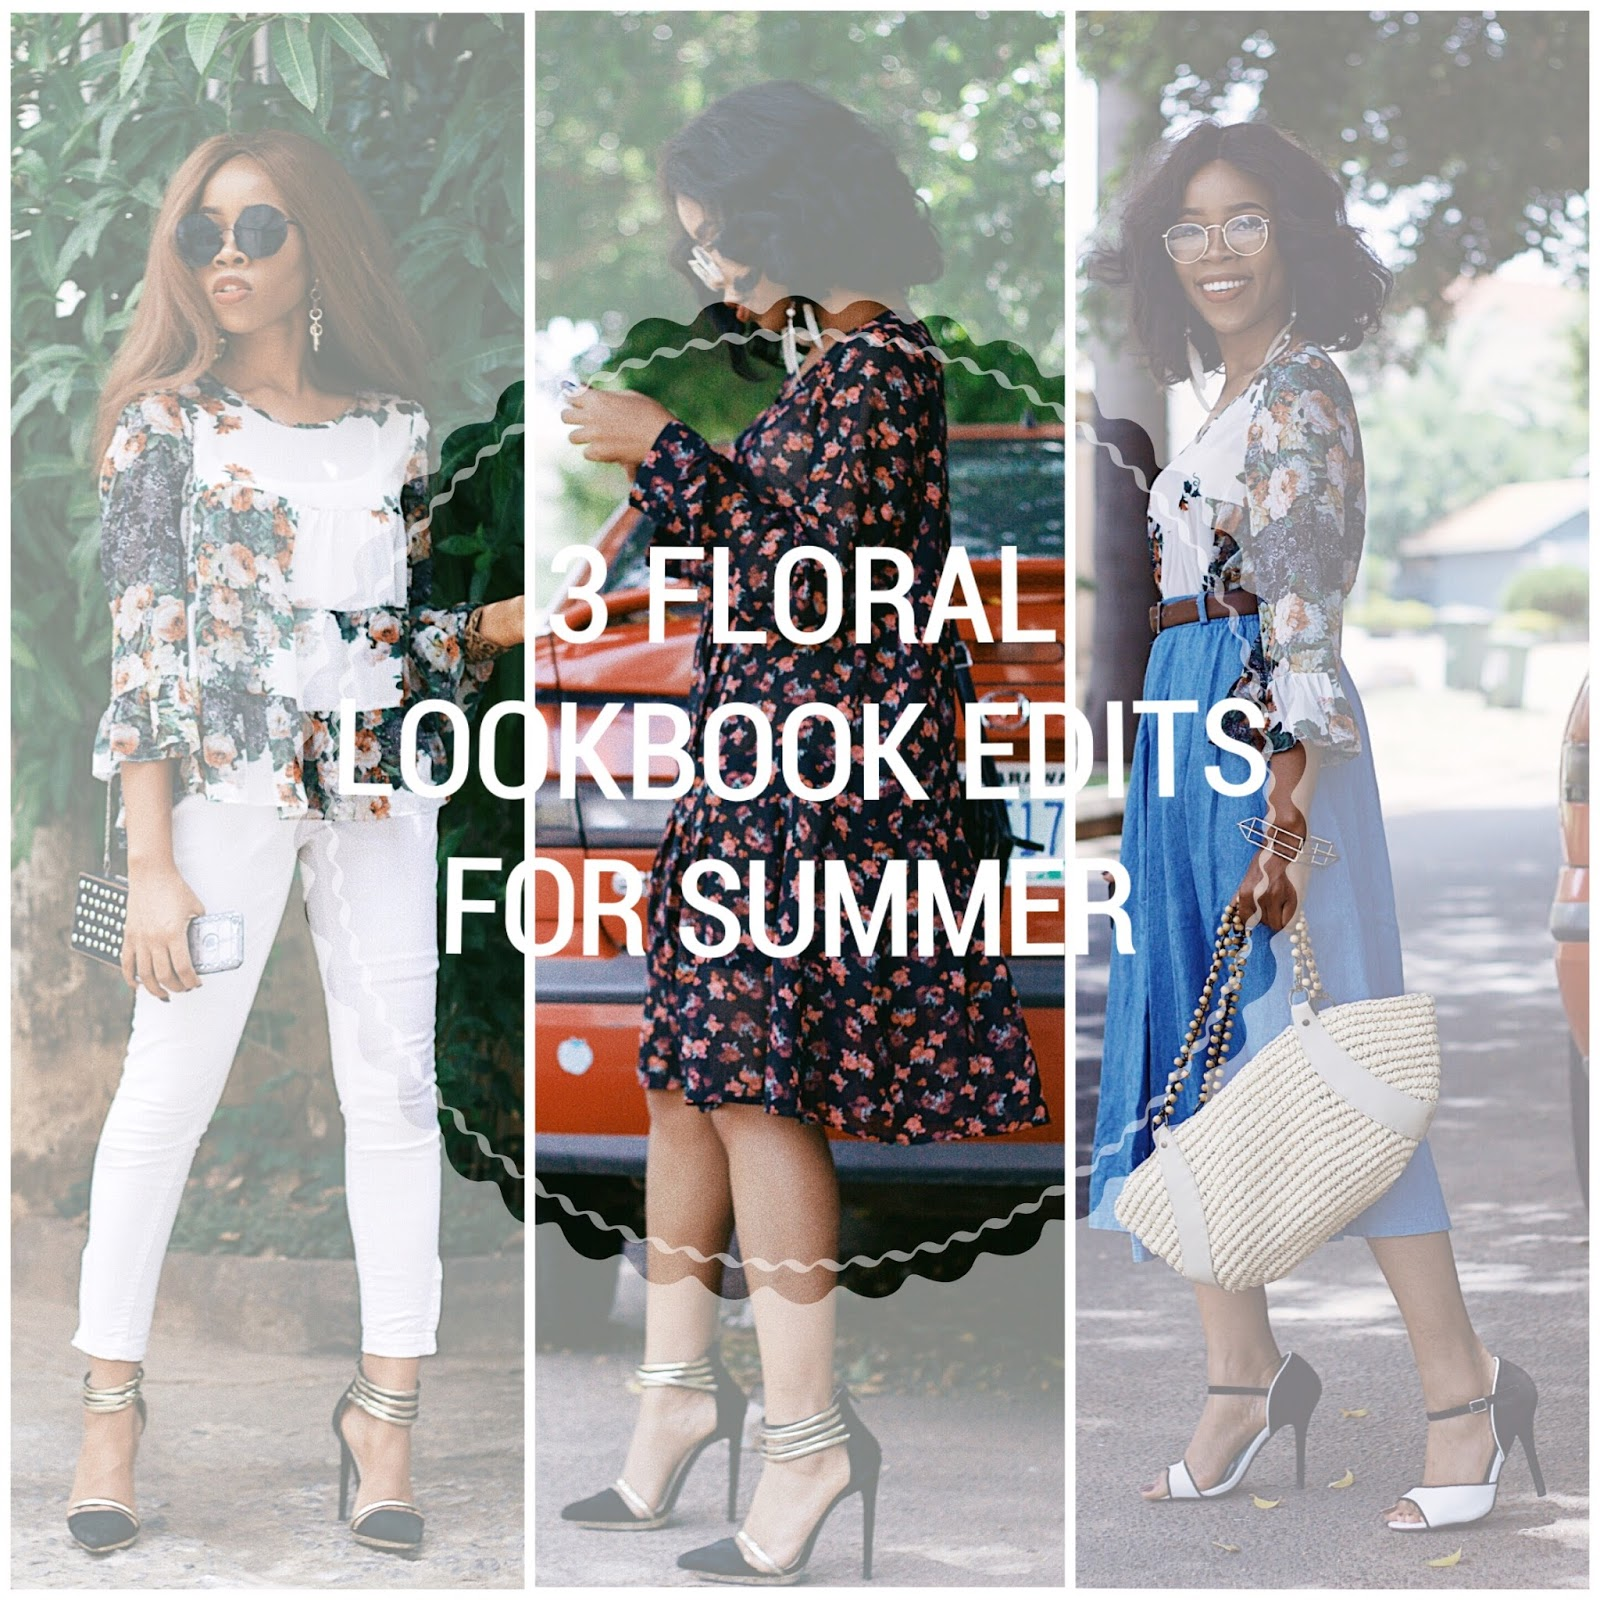 3 FLORAL LOOKBOOK EDITS FOR SUMMER